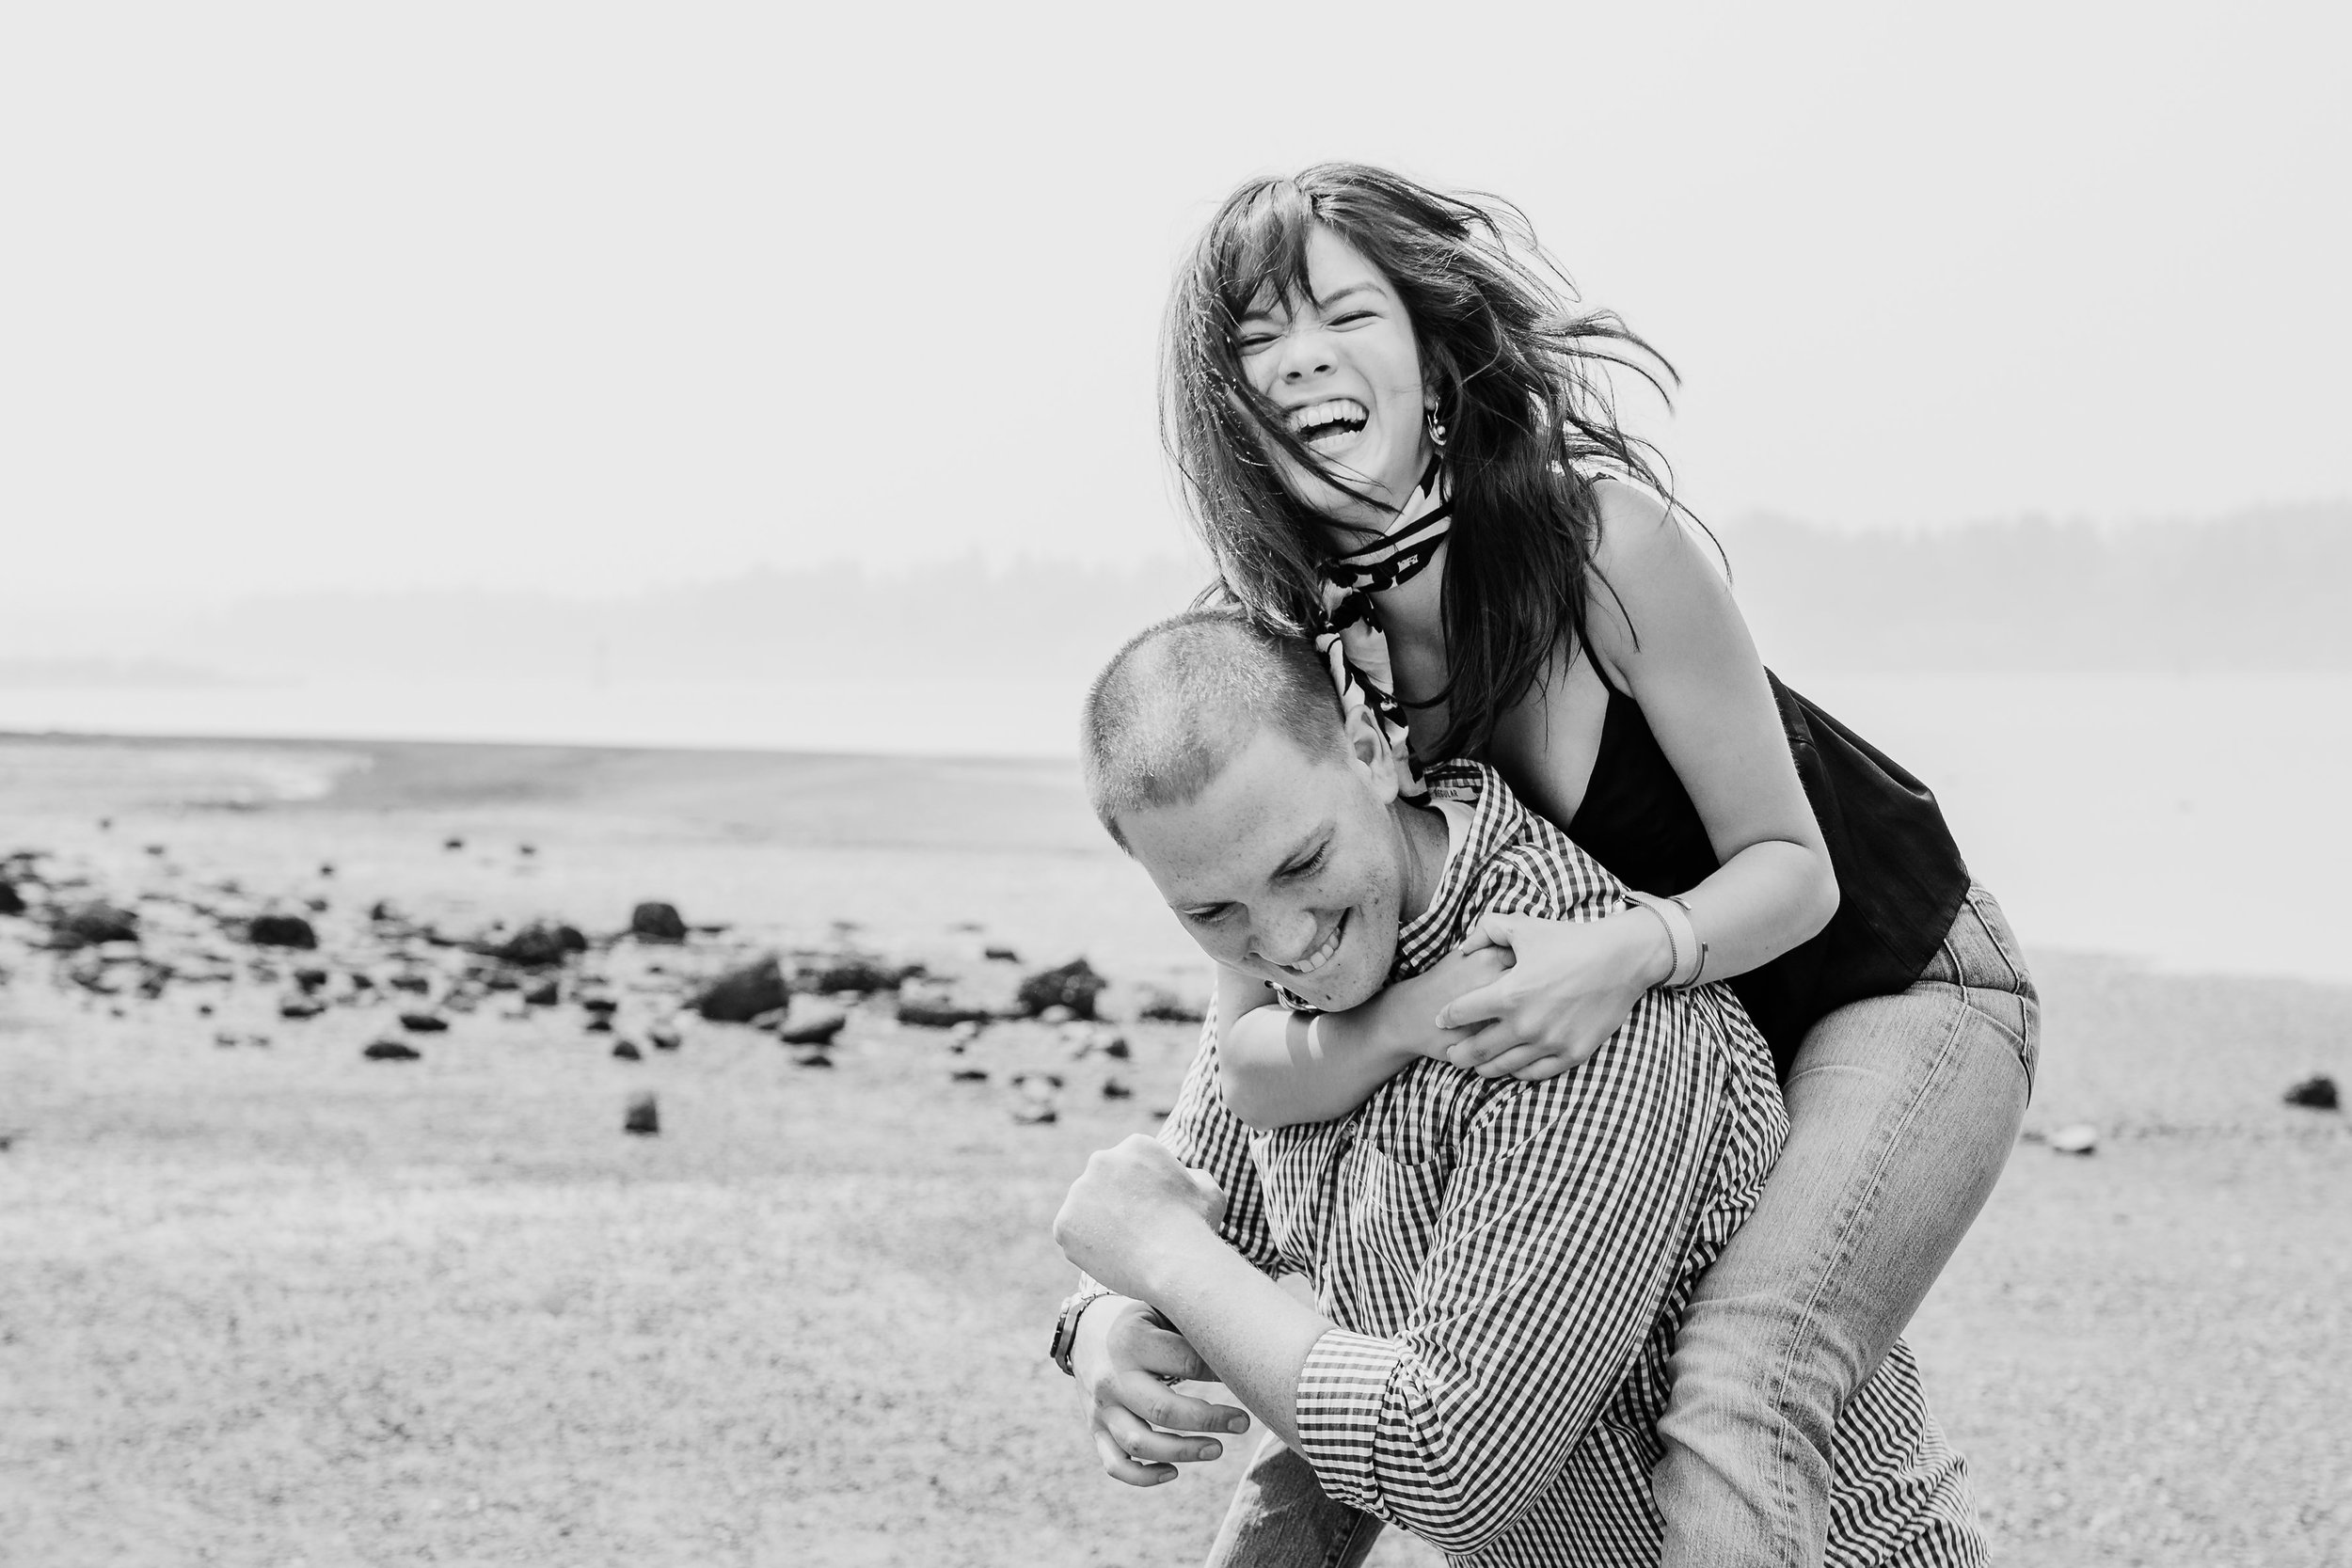 best professional engagement photographer in olympia washington beach smiling playful kissing piggy back